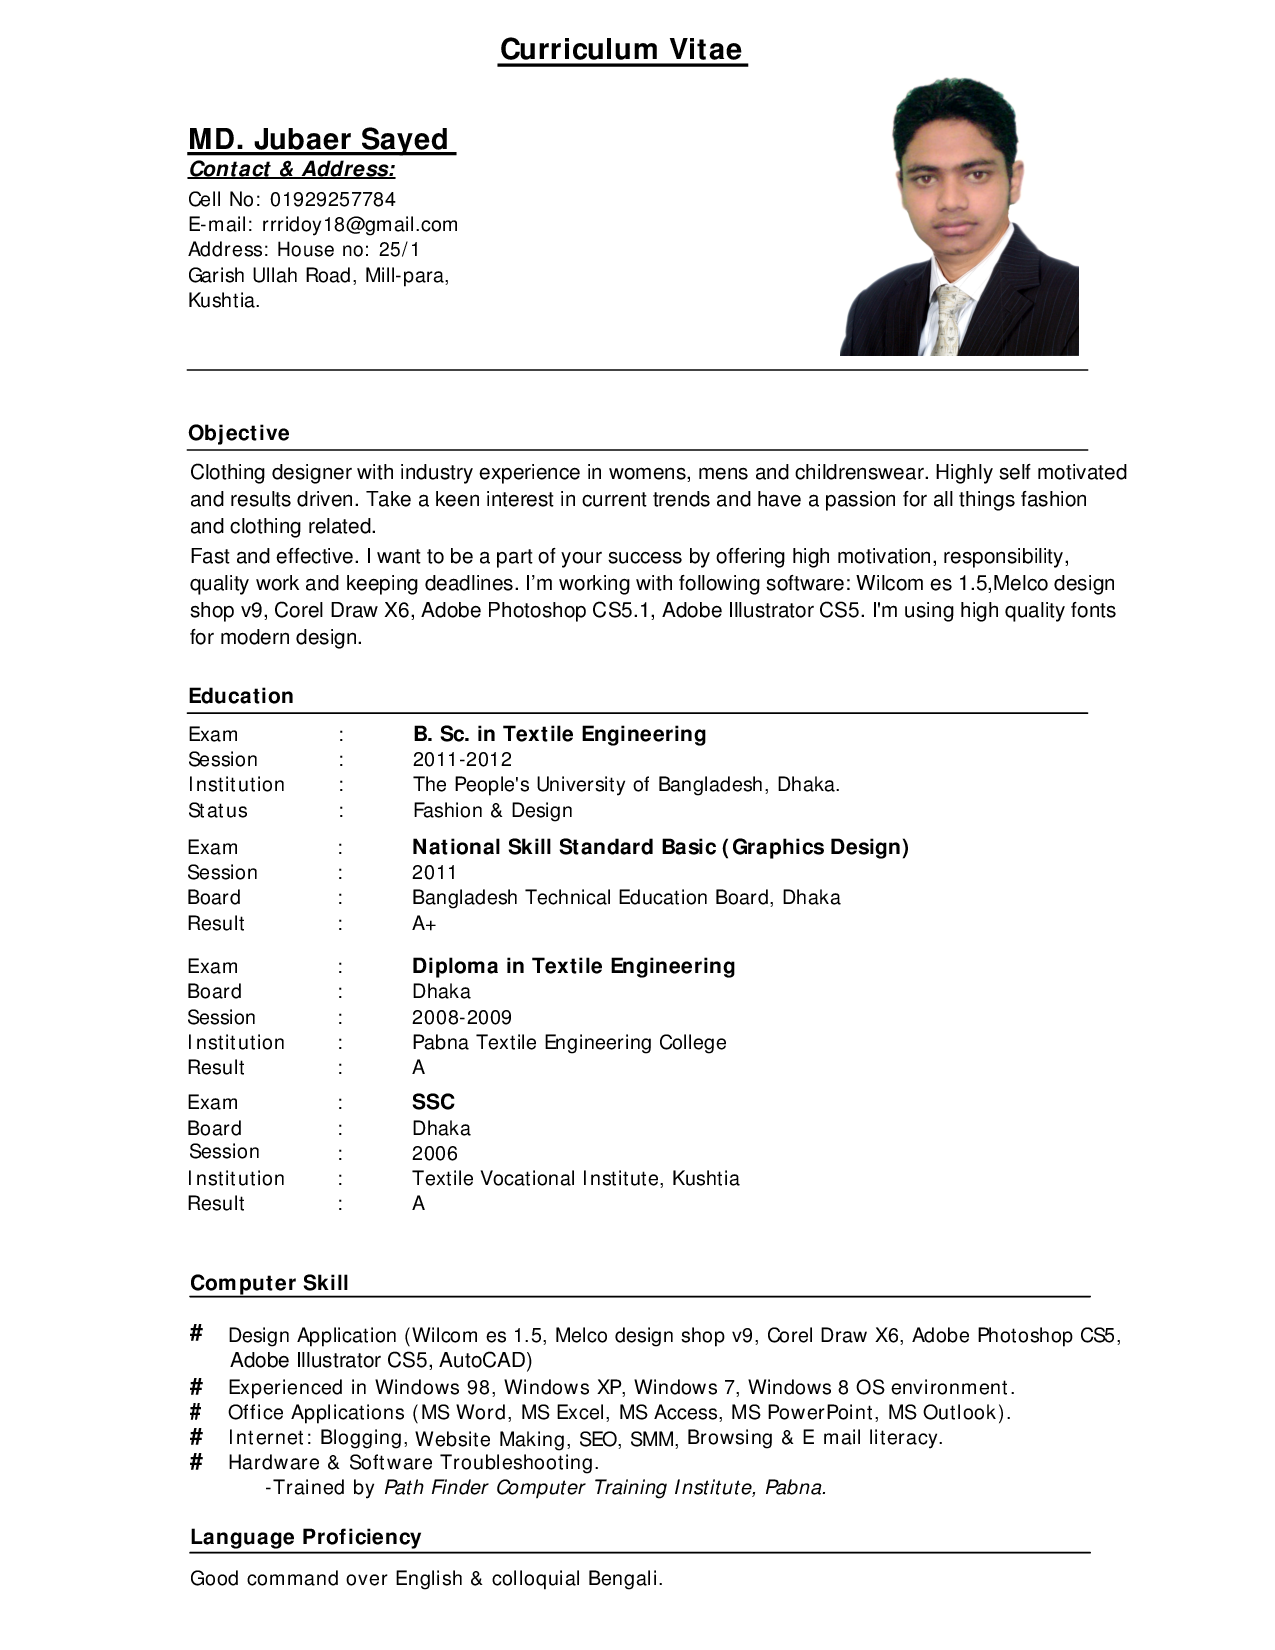 How to write a perfect curriculum vitae | Welcome to VISION 360